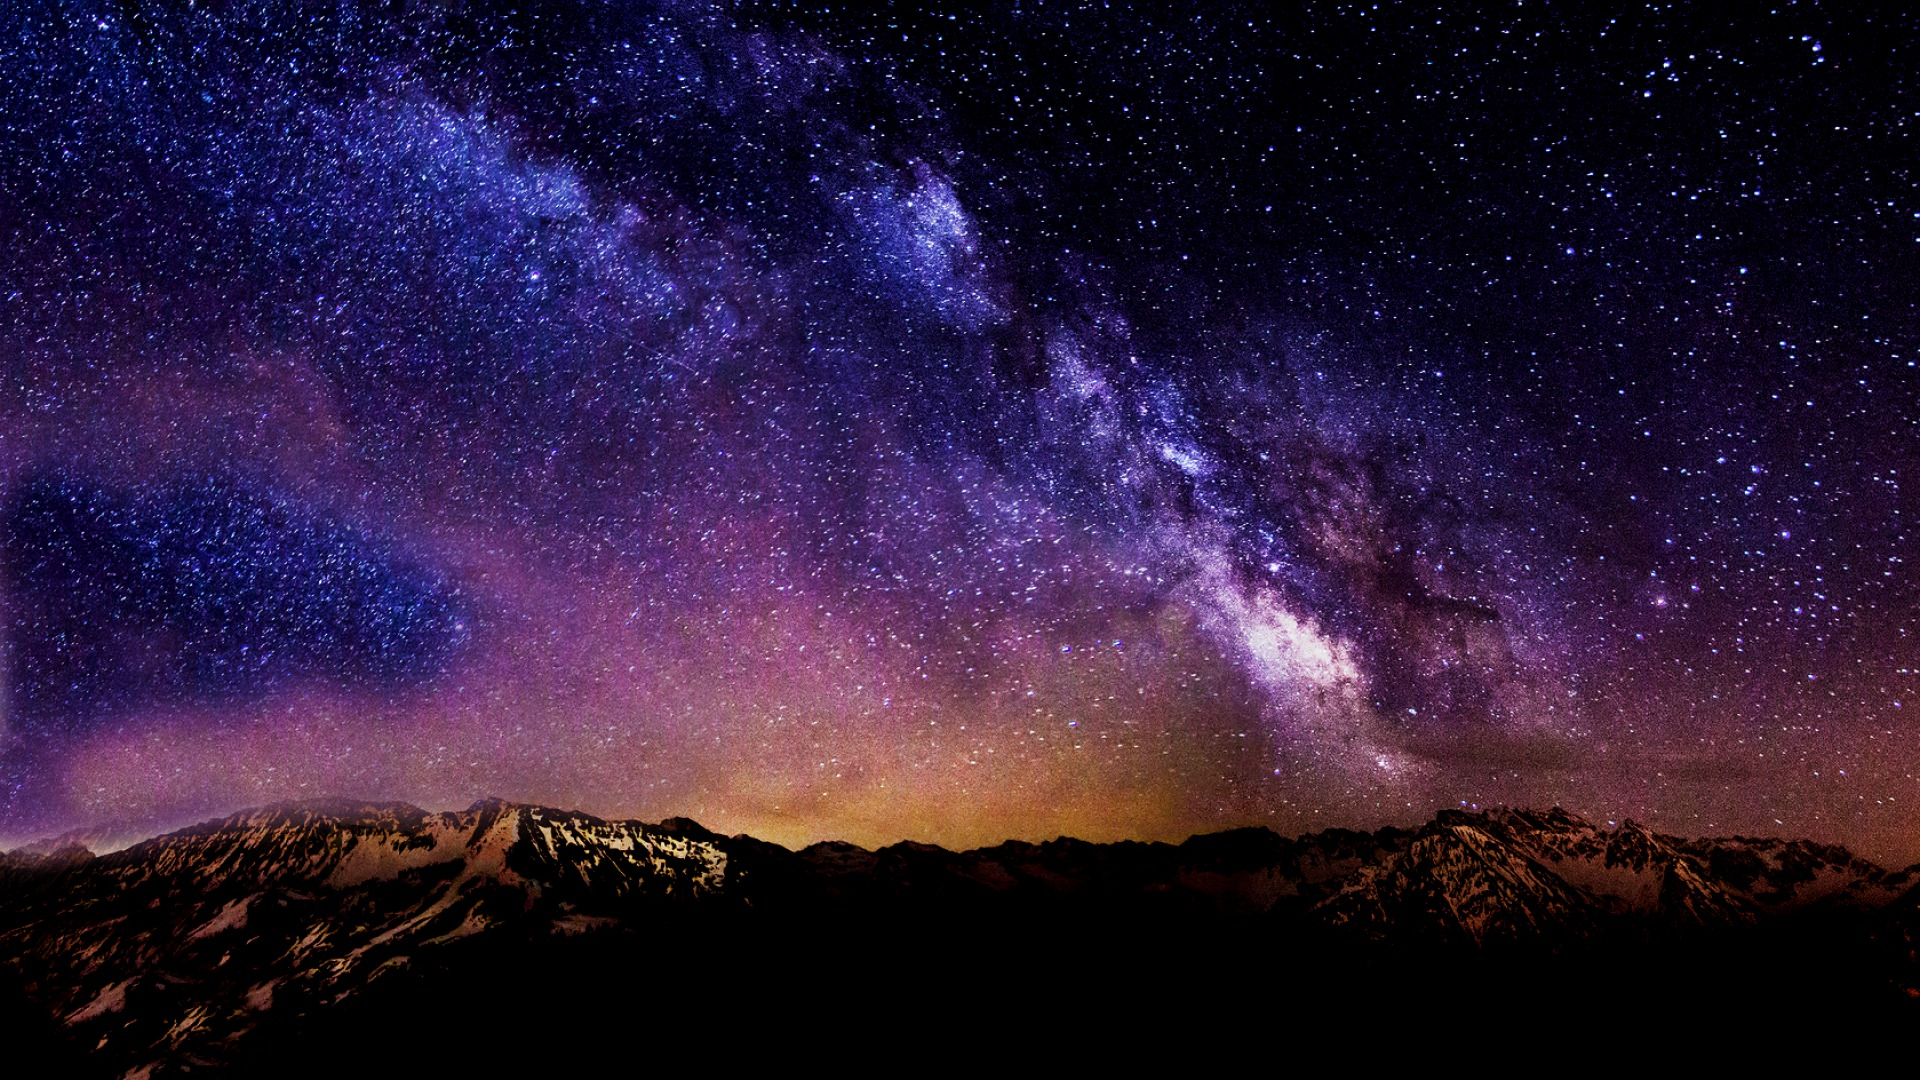 starry sky wallpapers high quality download free